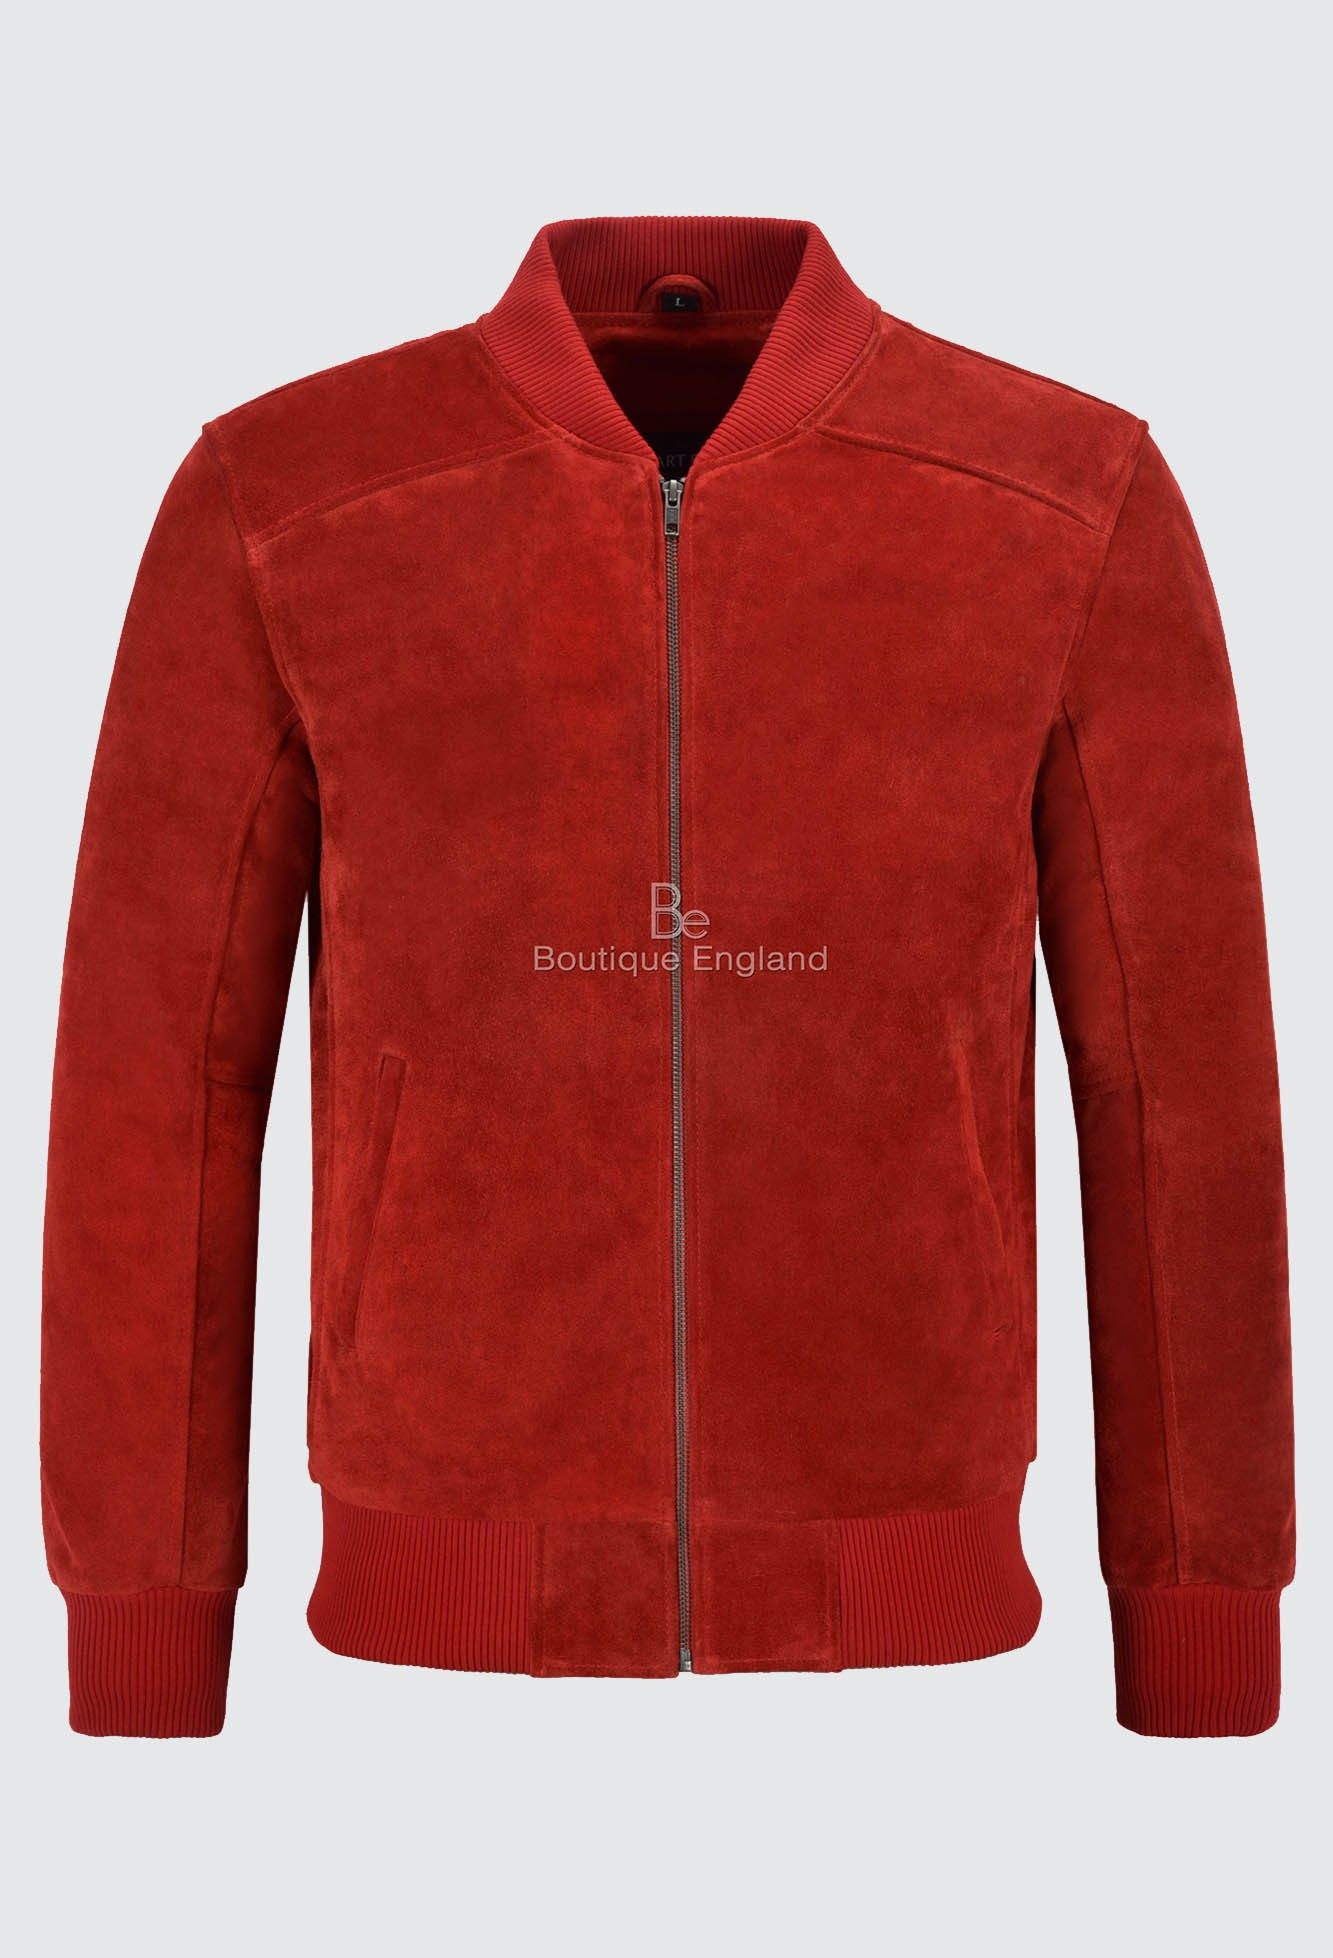 Men's 70's Real Leather Jacket Red Suede Retro Bomber Classic Biker Style 275-P